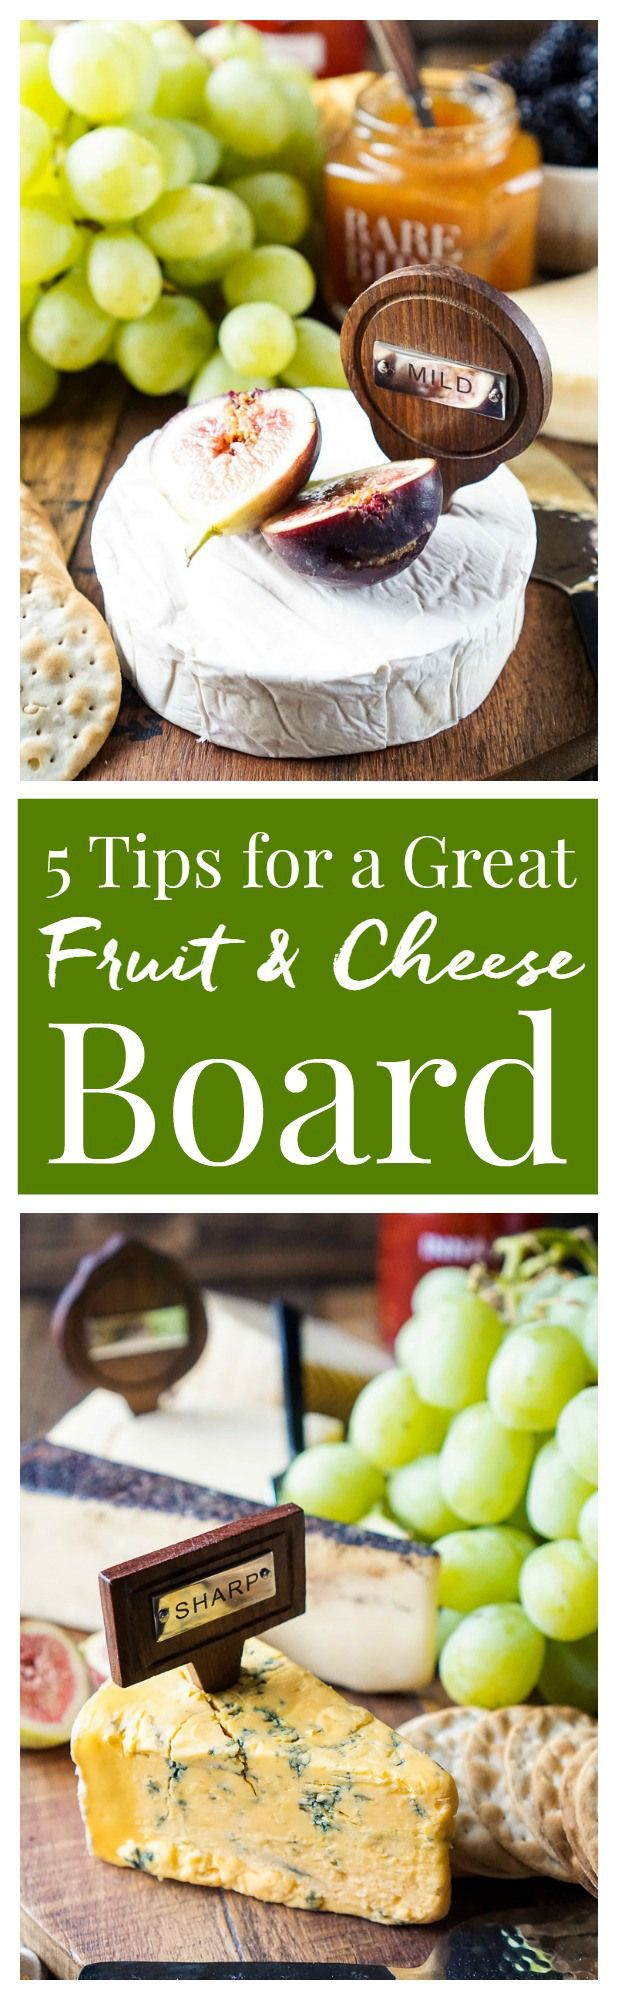 These 5 Tips for a Great Fruit and Cheese Board will have you entertaining with flavor and style! Learn how to choose cheeses and pairings, how to style and serve them, plus tips for doing it on a budget! This is a great appetizer for any get together and doesn't require any cooking! #Shaws #CheeseSale ad